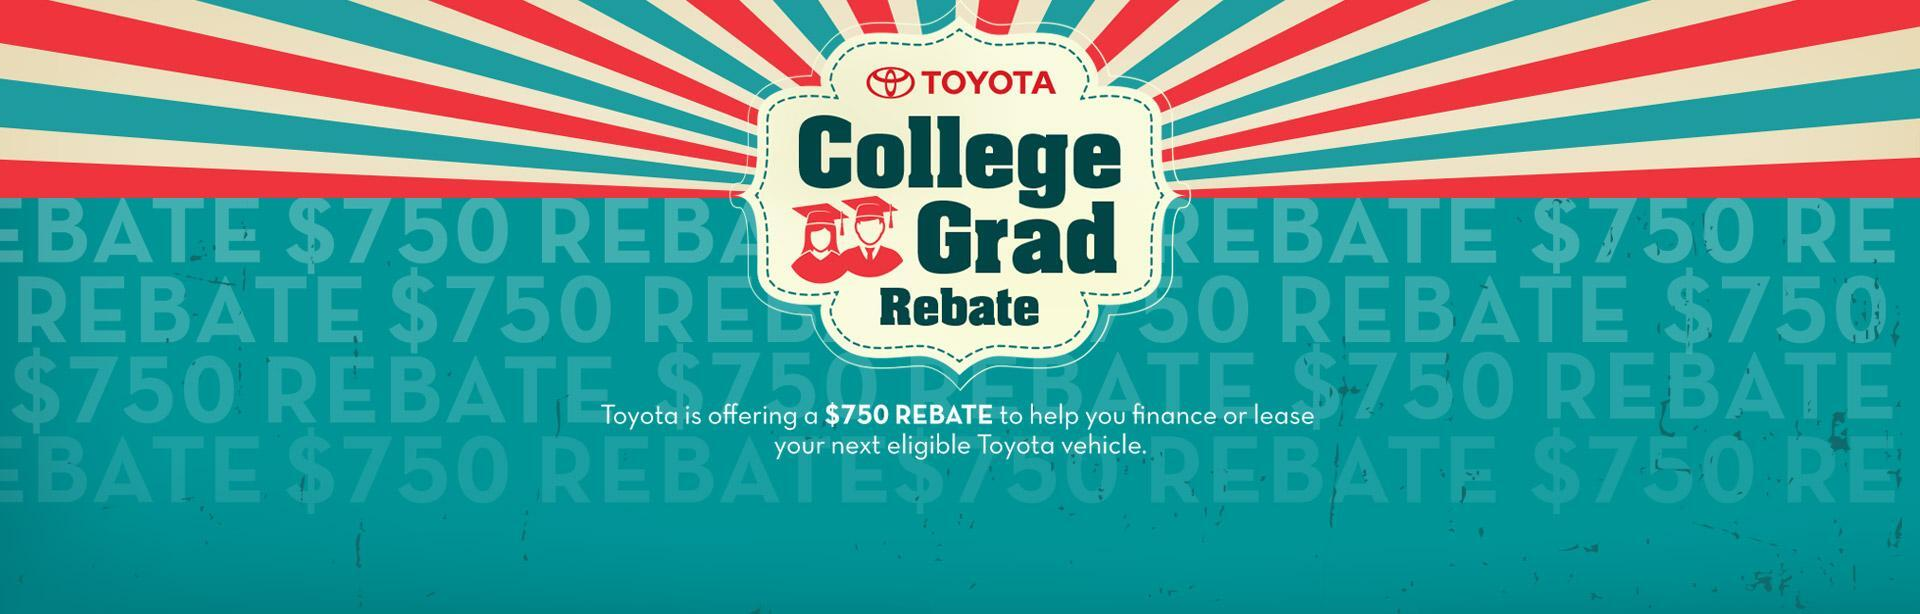 New & Pre-owned Cars | St. Cloud Toyota | Near St. Cloud, MN